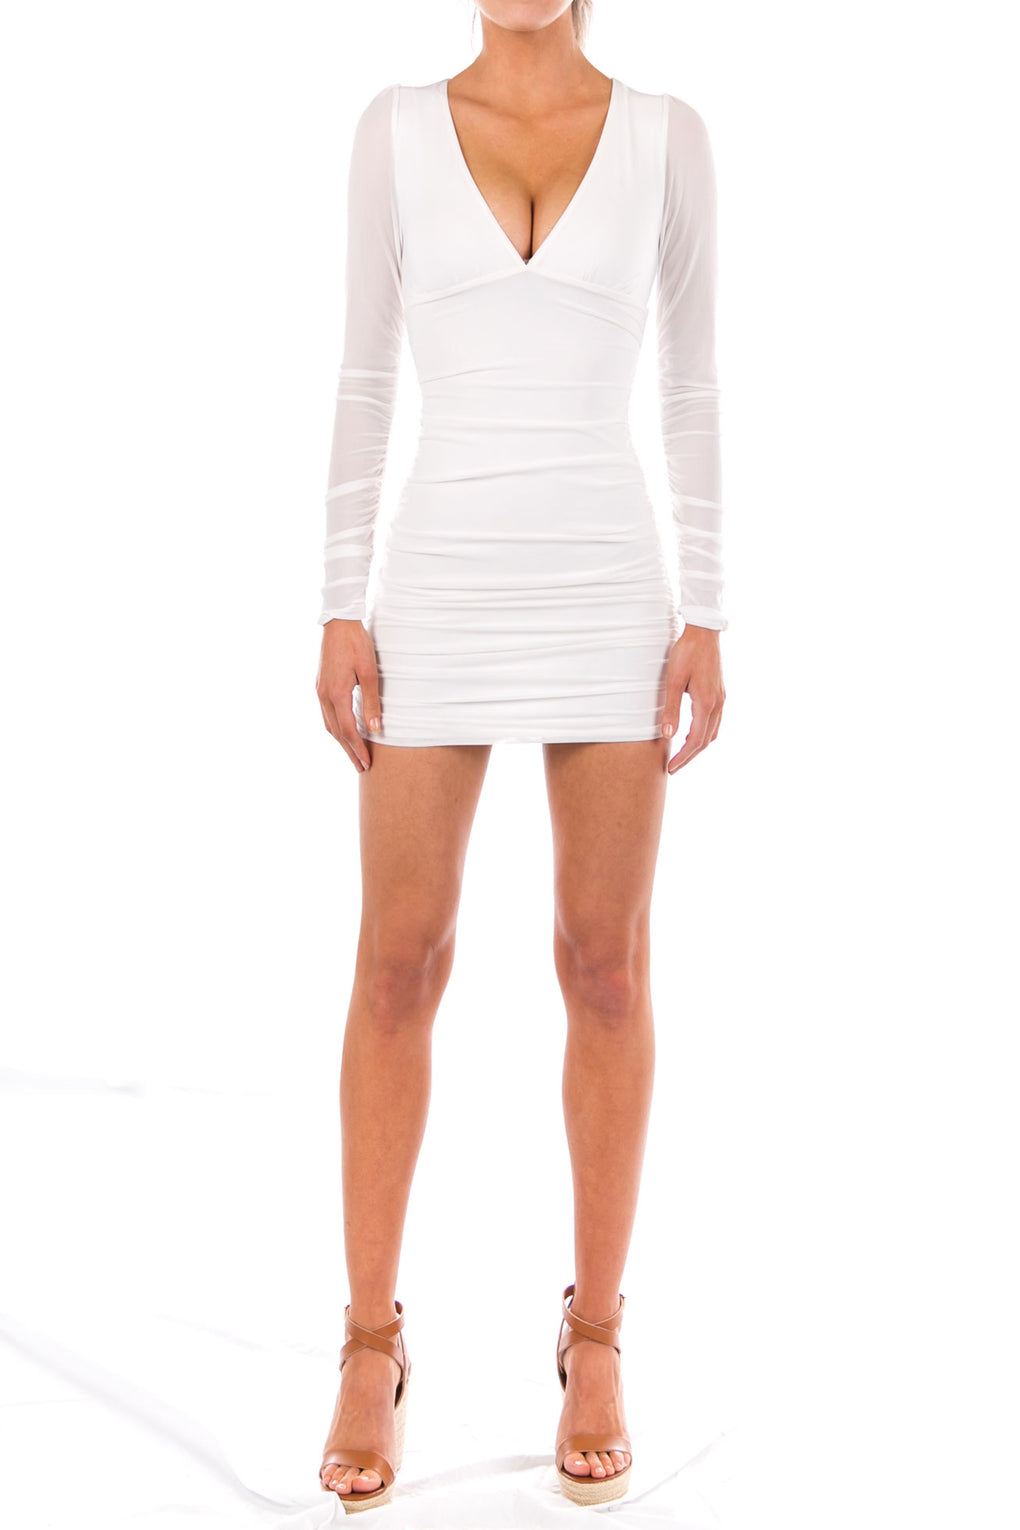 PRETTY WHITE THANG DRESS